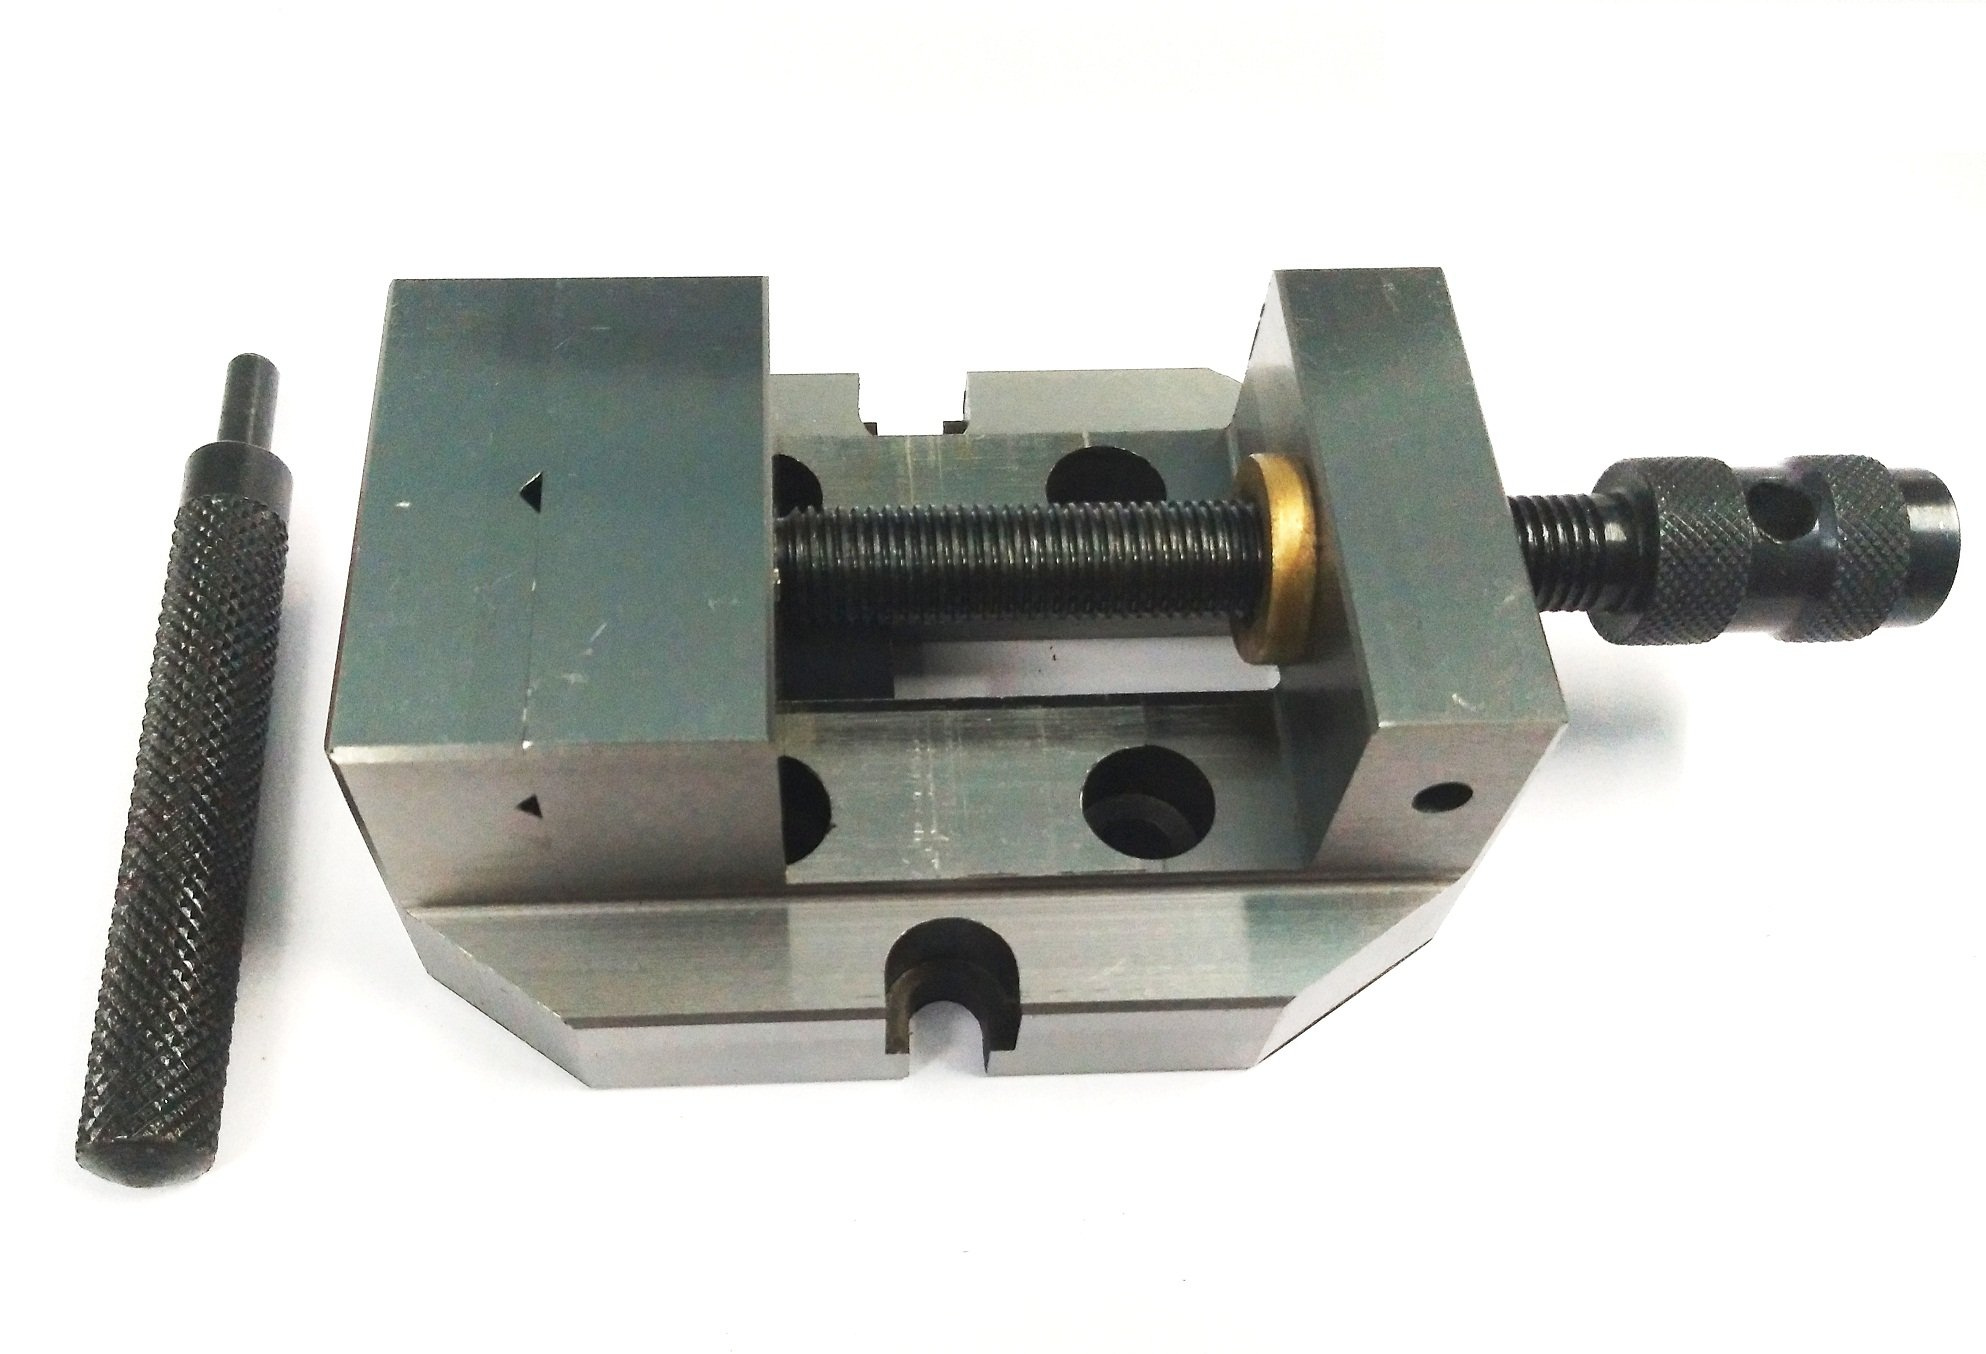 2-3/8'' Inches (60 mm) Jaw Width Grinding Steel Vice -Hardened & Ground Finish